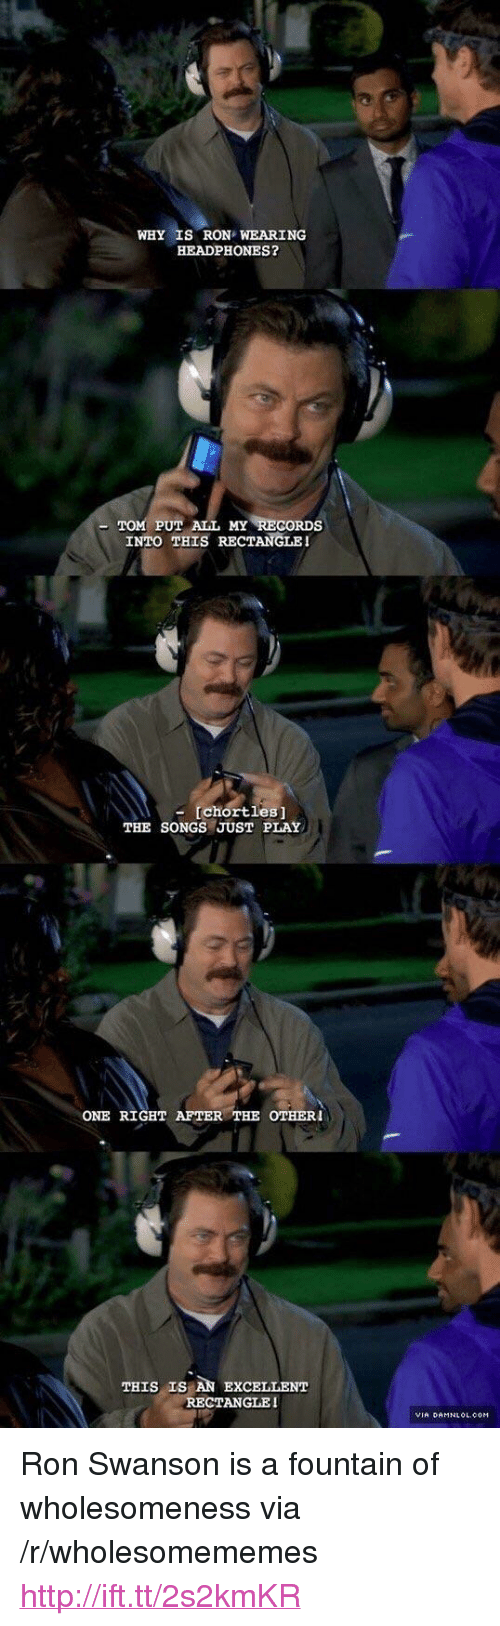 """Ron Swanson: WHY IS RON WEARING  HEADPHONES?  PUT ALL MY RECORDS  INTO THIS RECTANGLE  chortles]  THE SONGS JUST PLAY  ONE RIGHT AFTER THE OTHER  THIS IS AN EXCELLENT  RECTANGLE!  VIA DAMNL ◇L.OOM <p>Ron Swanson is a fountain of wholesomeness via /r/wholesomememes <a href=""""http://ift.tt/2s2kmKR"""">http://ift.tt/2s2kmKR</a></p>"""